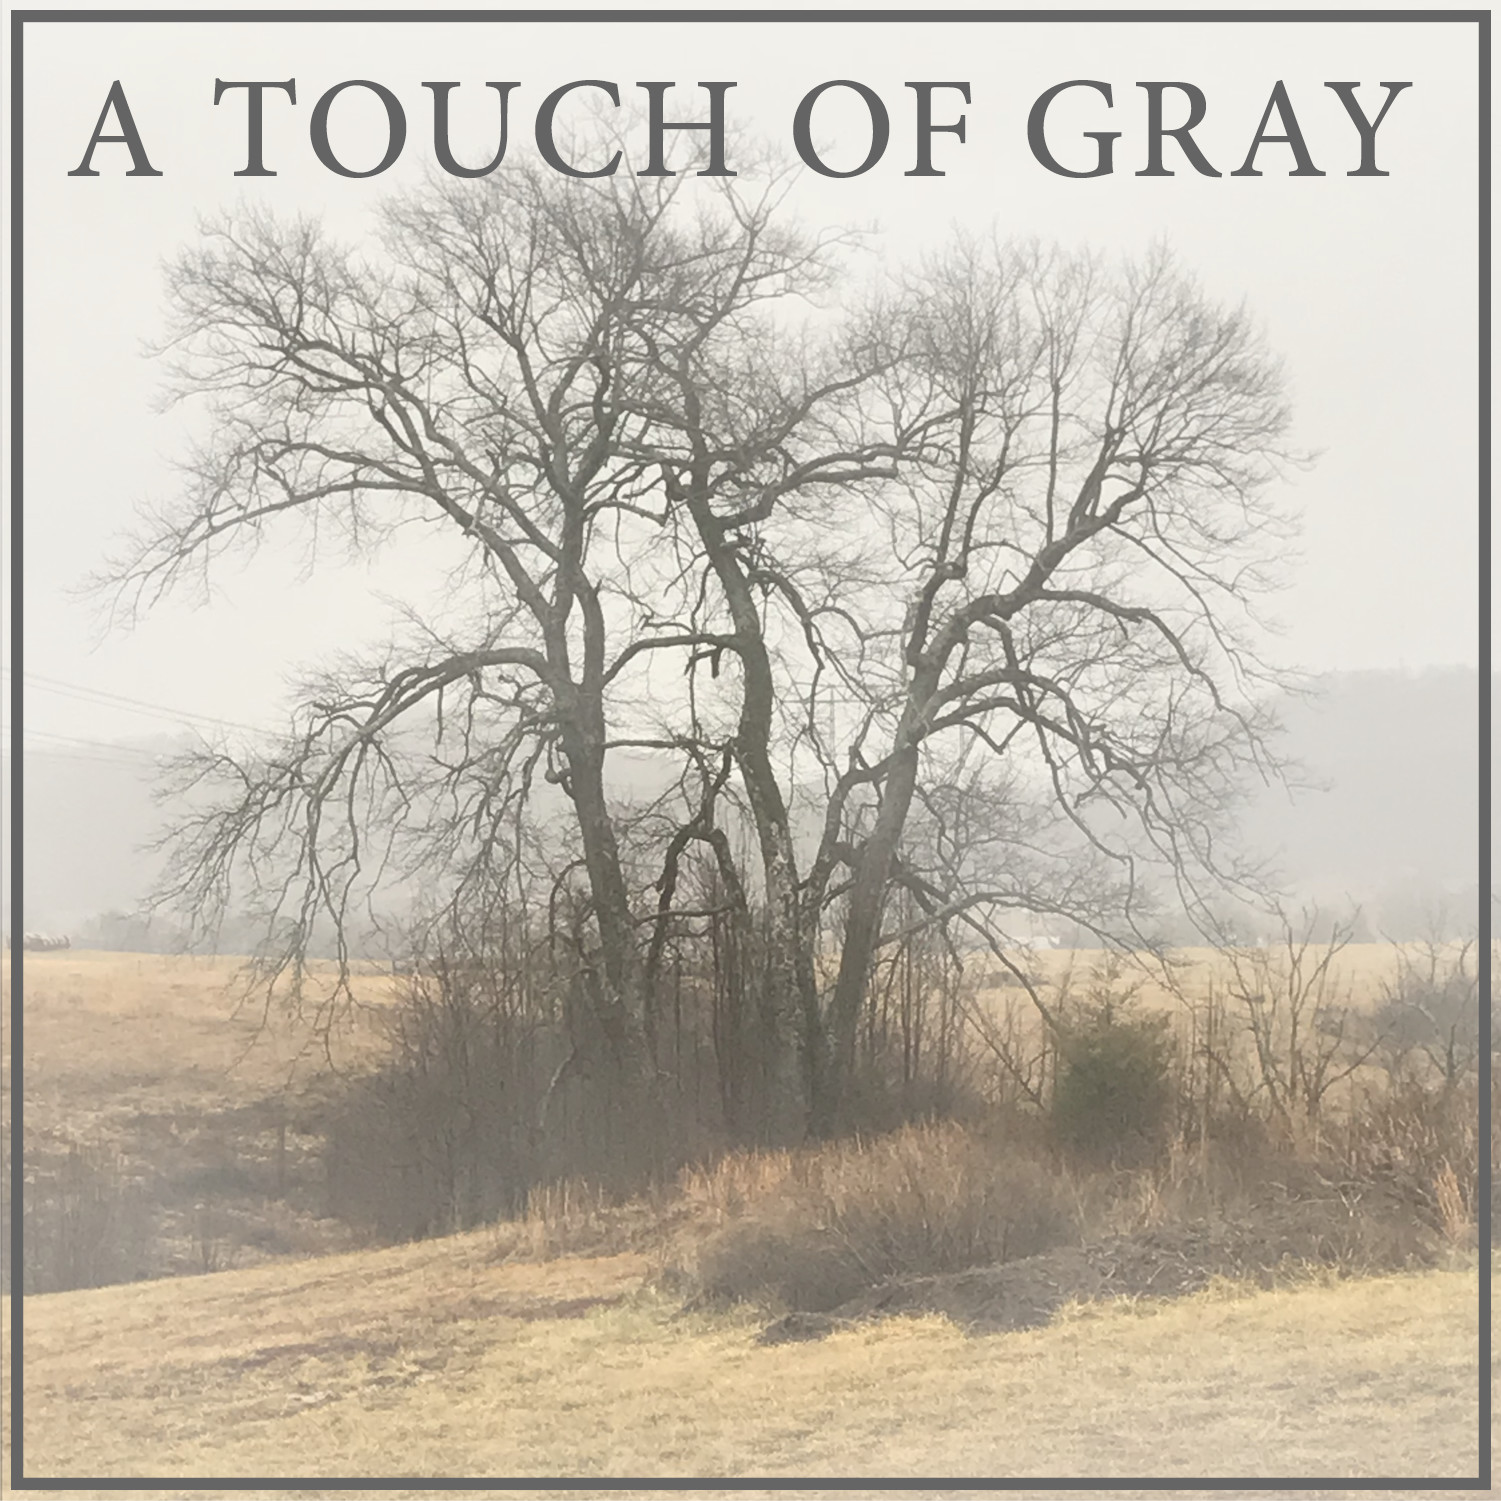 A Touch of Gray - Episode 12 - The Forecast is Gray